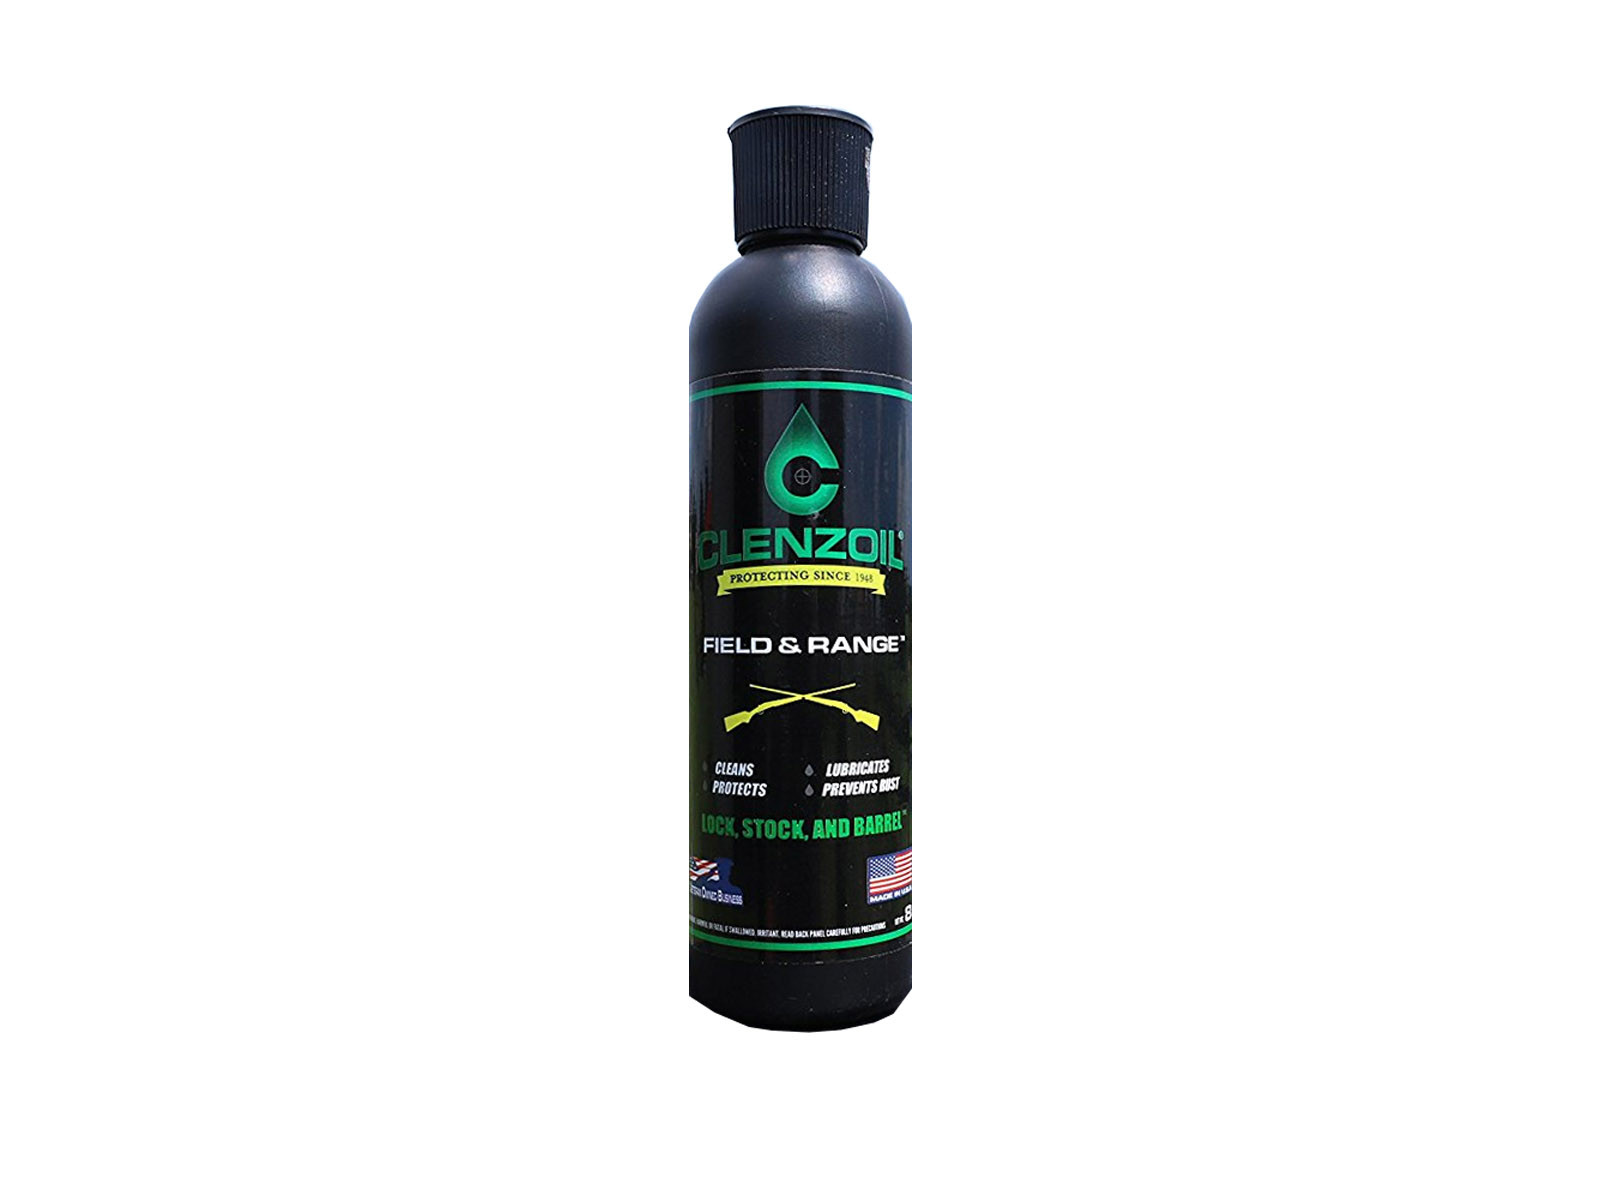 Clenzoil - Field and Range Solution (8oz)